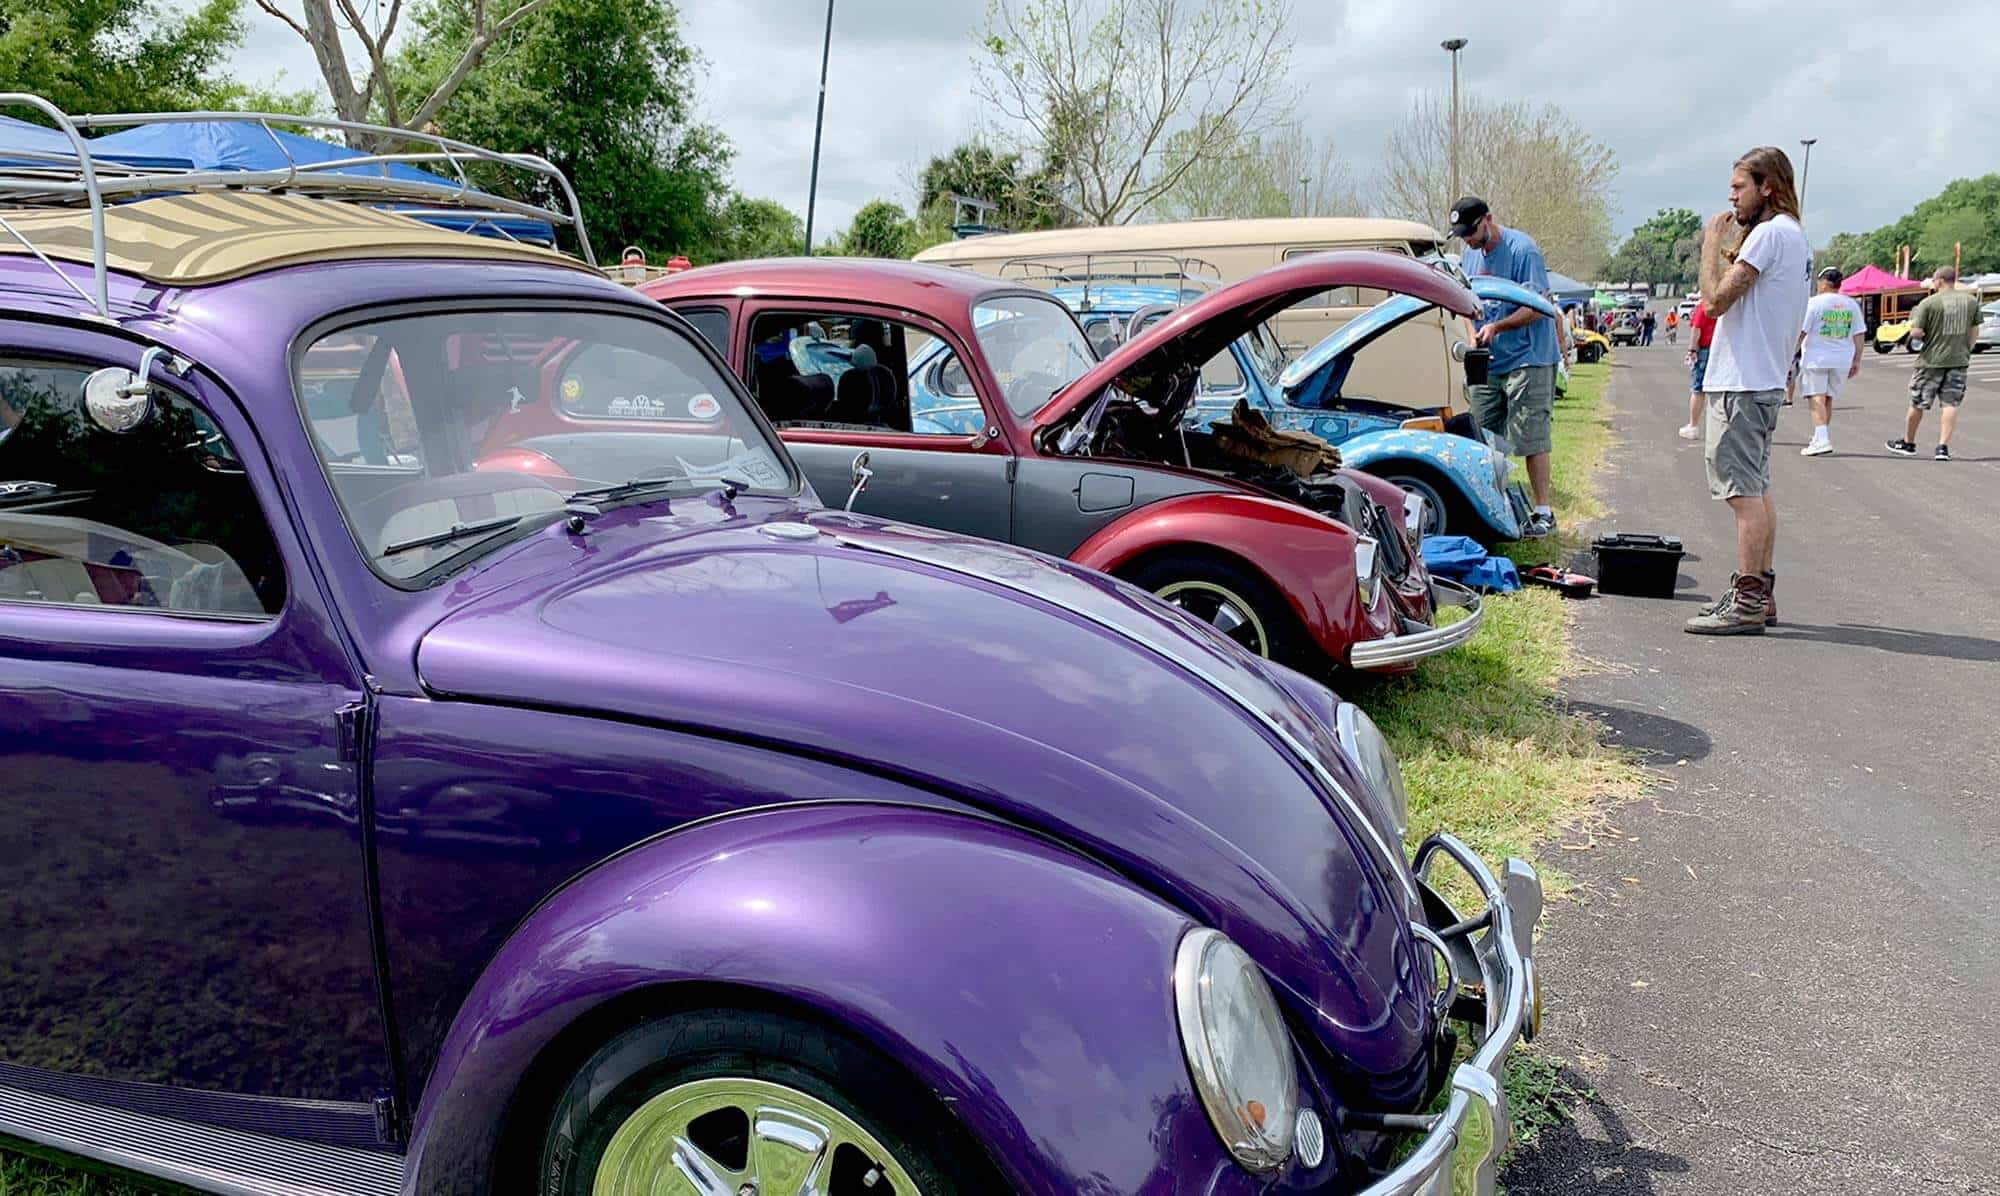 row of antique Volkswagen Beetles and people looking at the cars